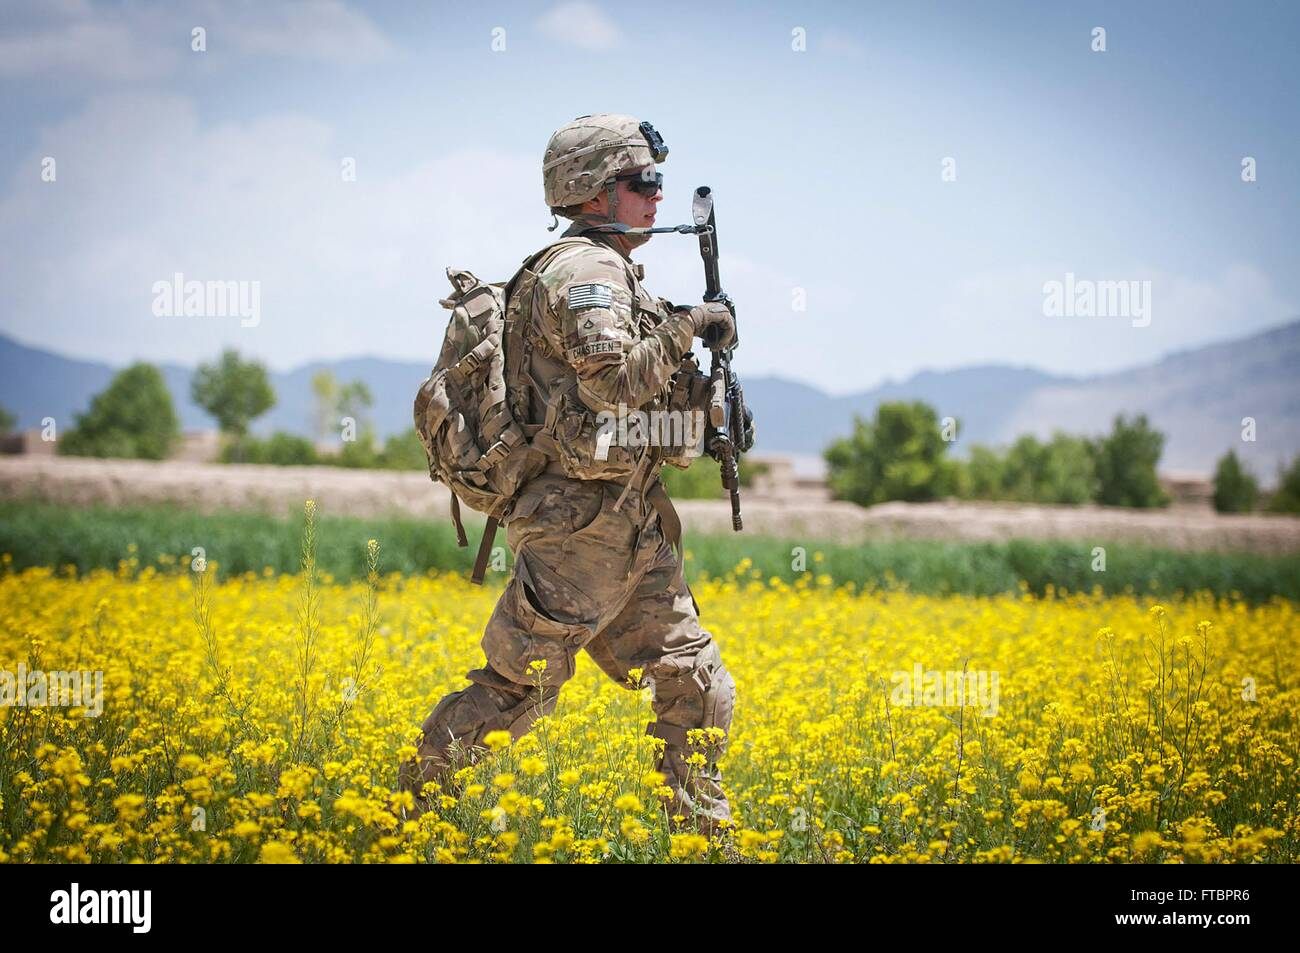 A U.S. Army paratrooper with the 82nd Airborne Division walks through a field of flowers while on patrol May 19, - Stock Image